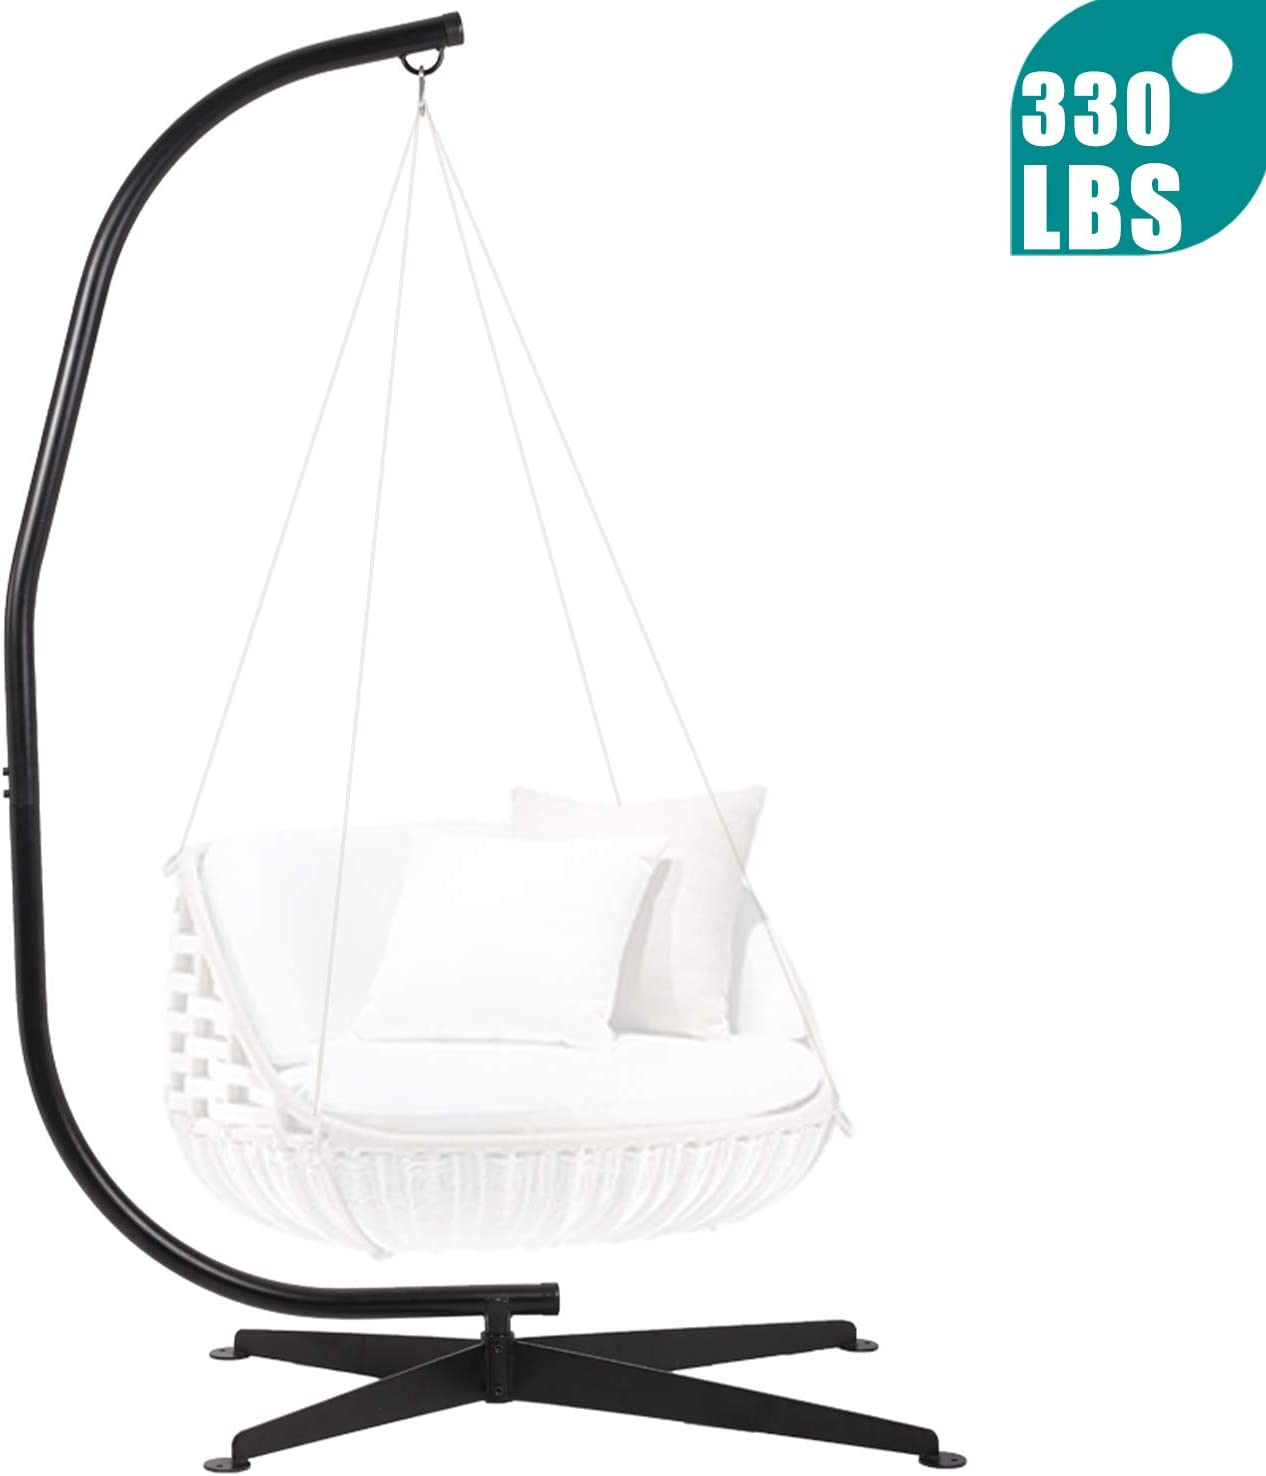 Her Majesty Hammock Chair Stands Hanging Hammock Chair C Stand Only Hanging Chair Outdoor Indoor Solid Steel Heavy Duty Construction for Hammock Air Porch Swing Chair